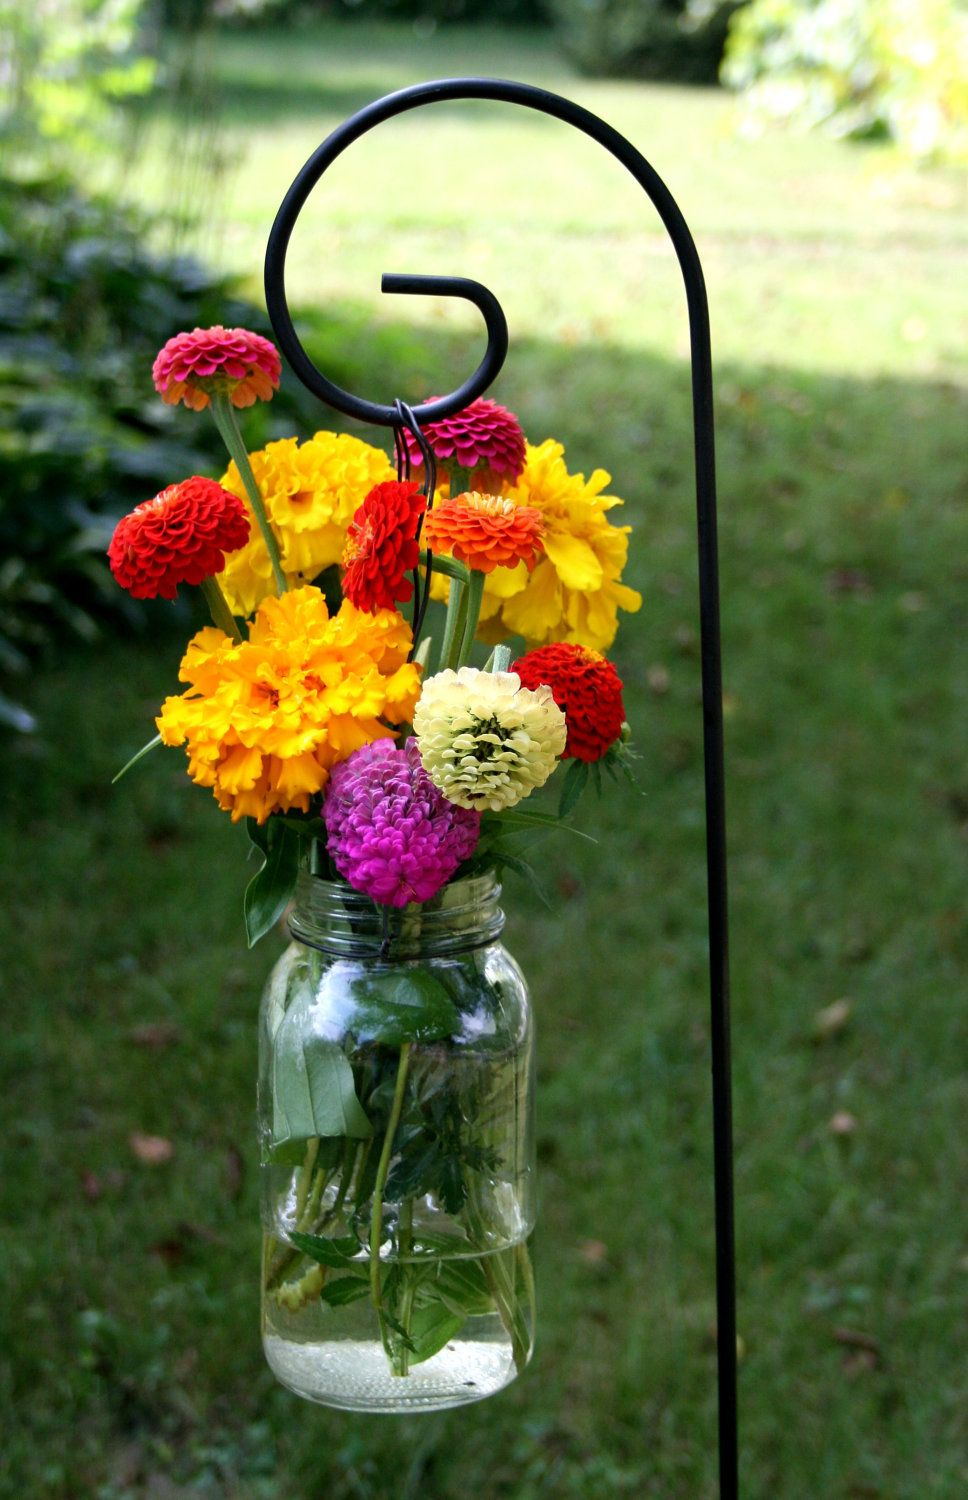 Yard wedding decoration ideas  Shepherdus hooks  mason jars  flowers for along the ceremony